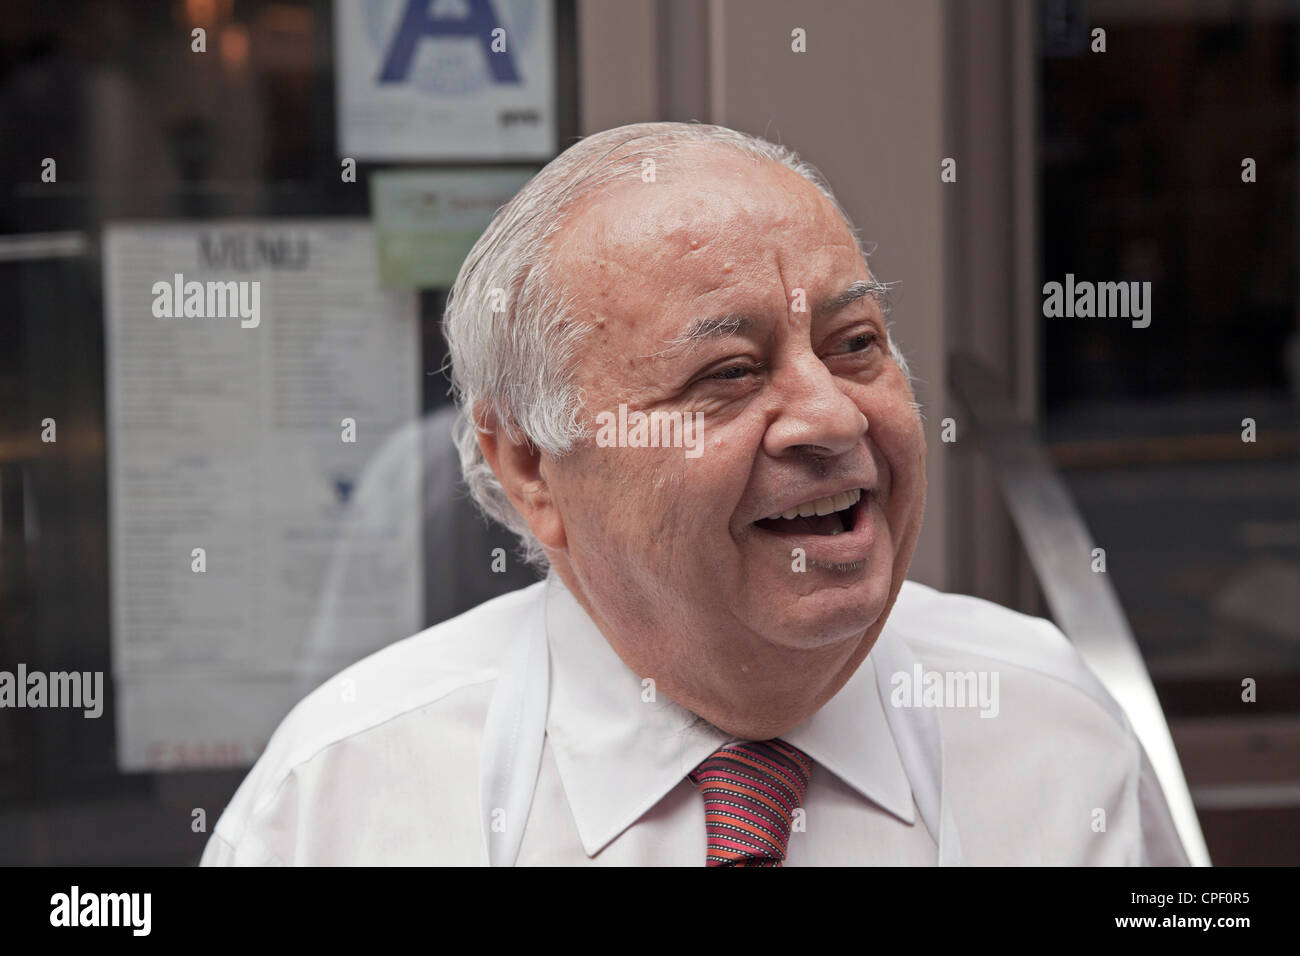 A man chats in front of the restaurant he owns in New York City. - Stock Image